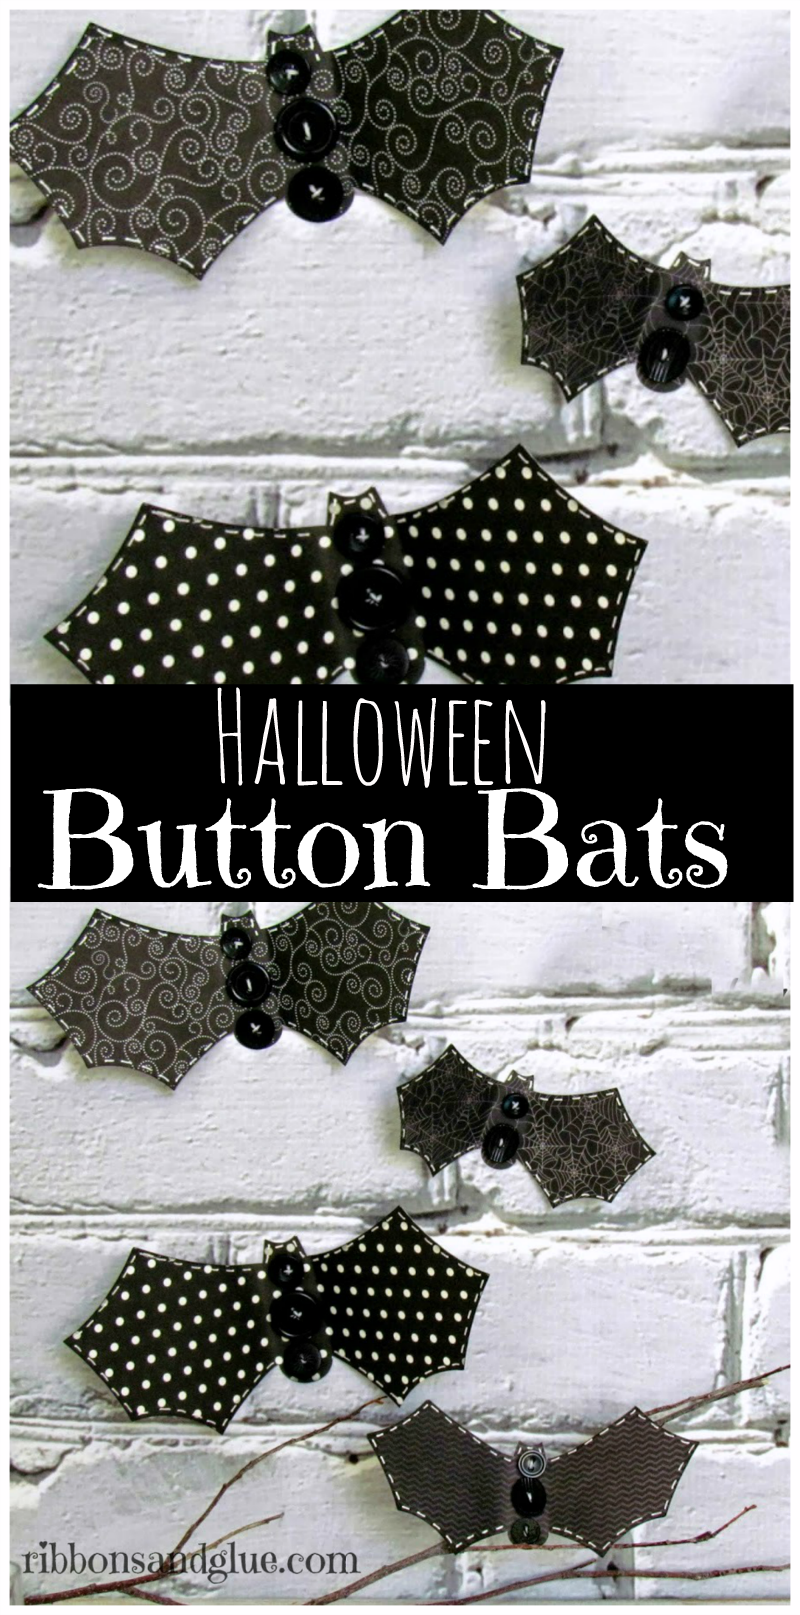 Halloween Button Bats Collage